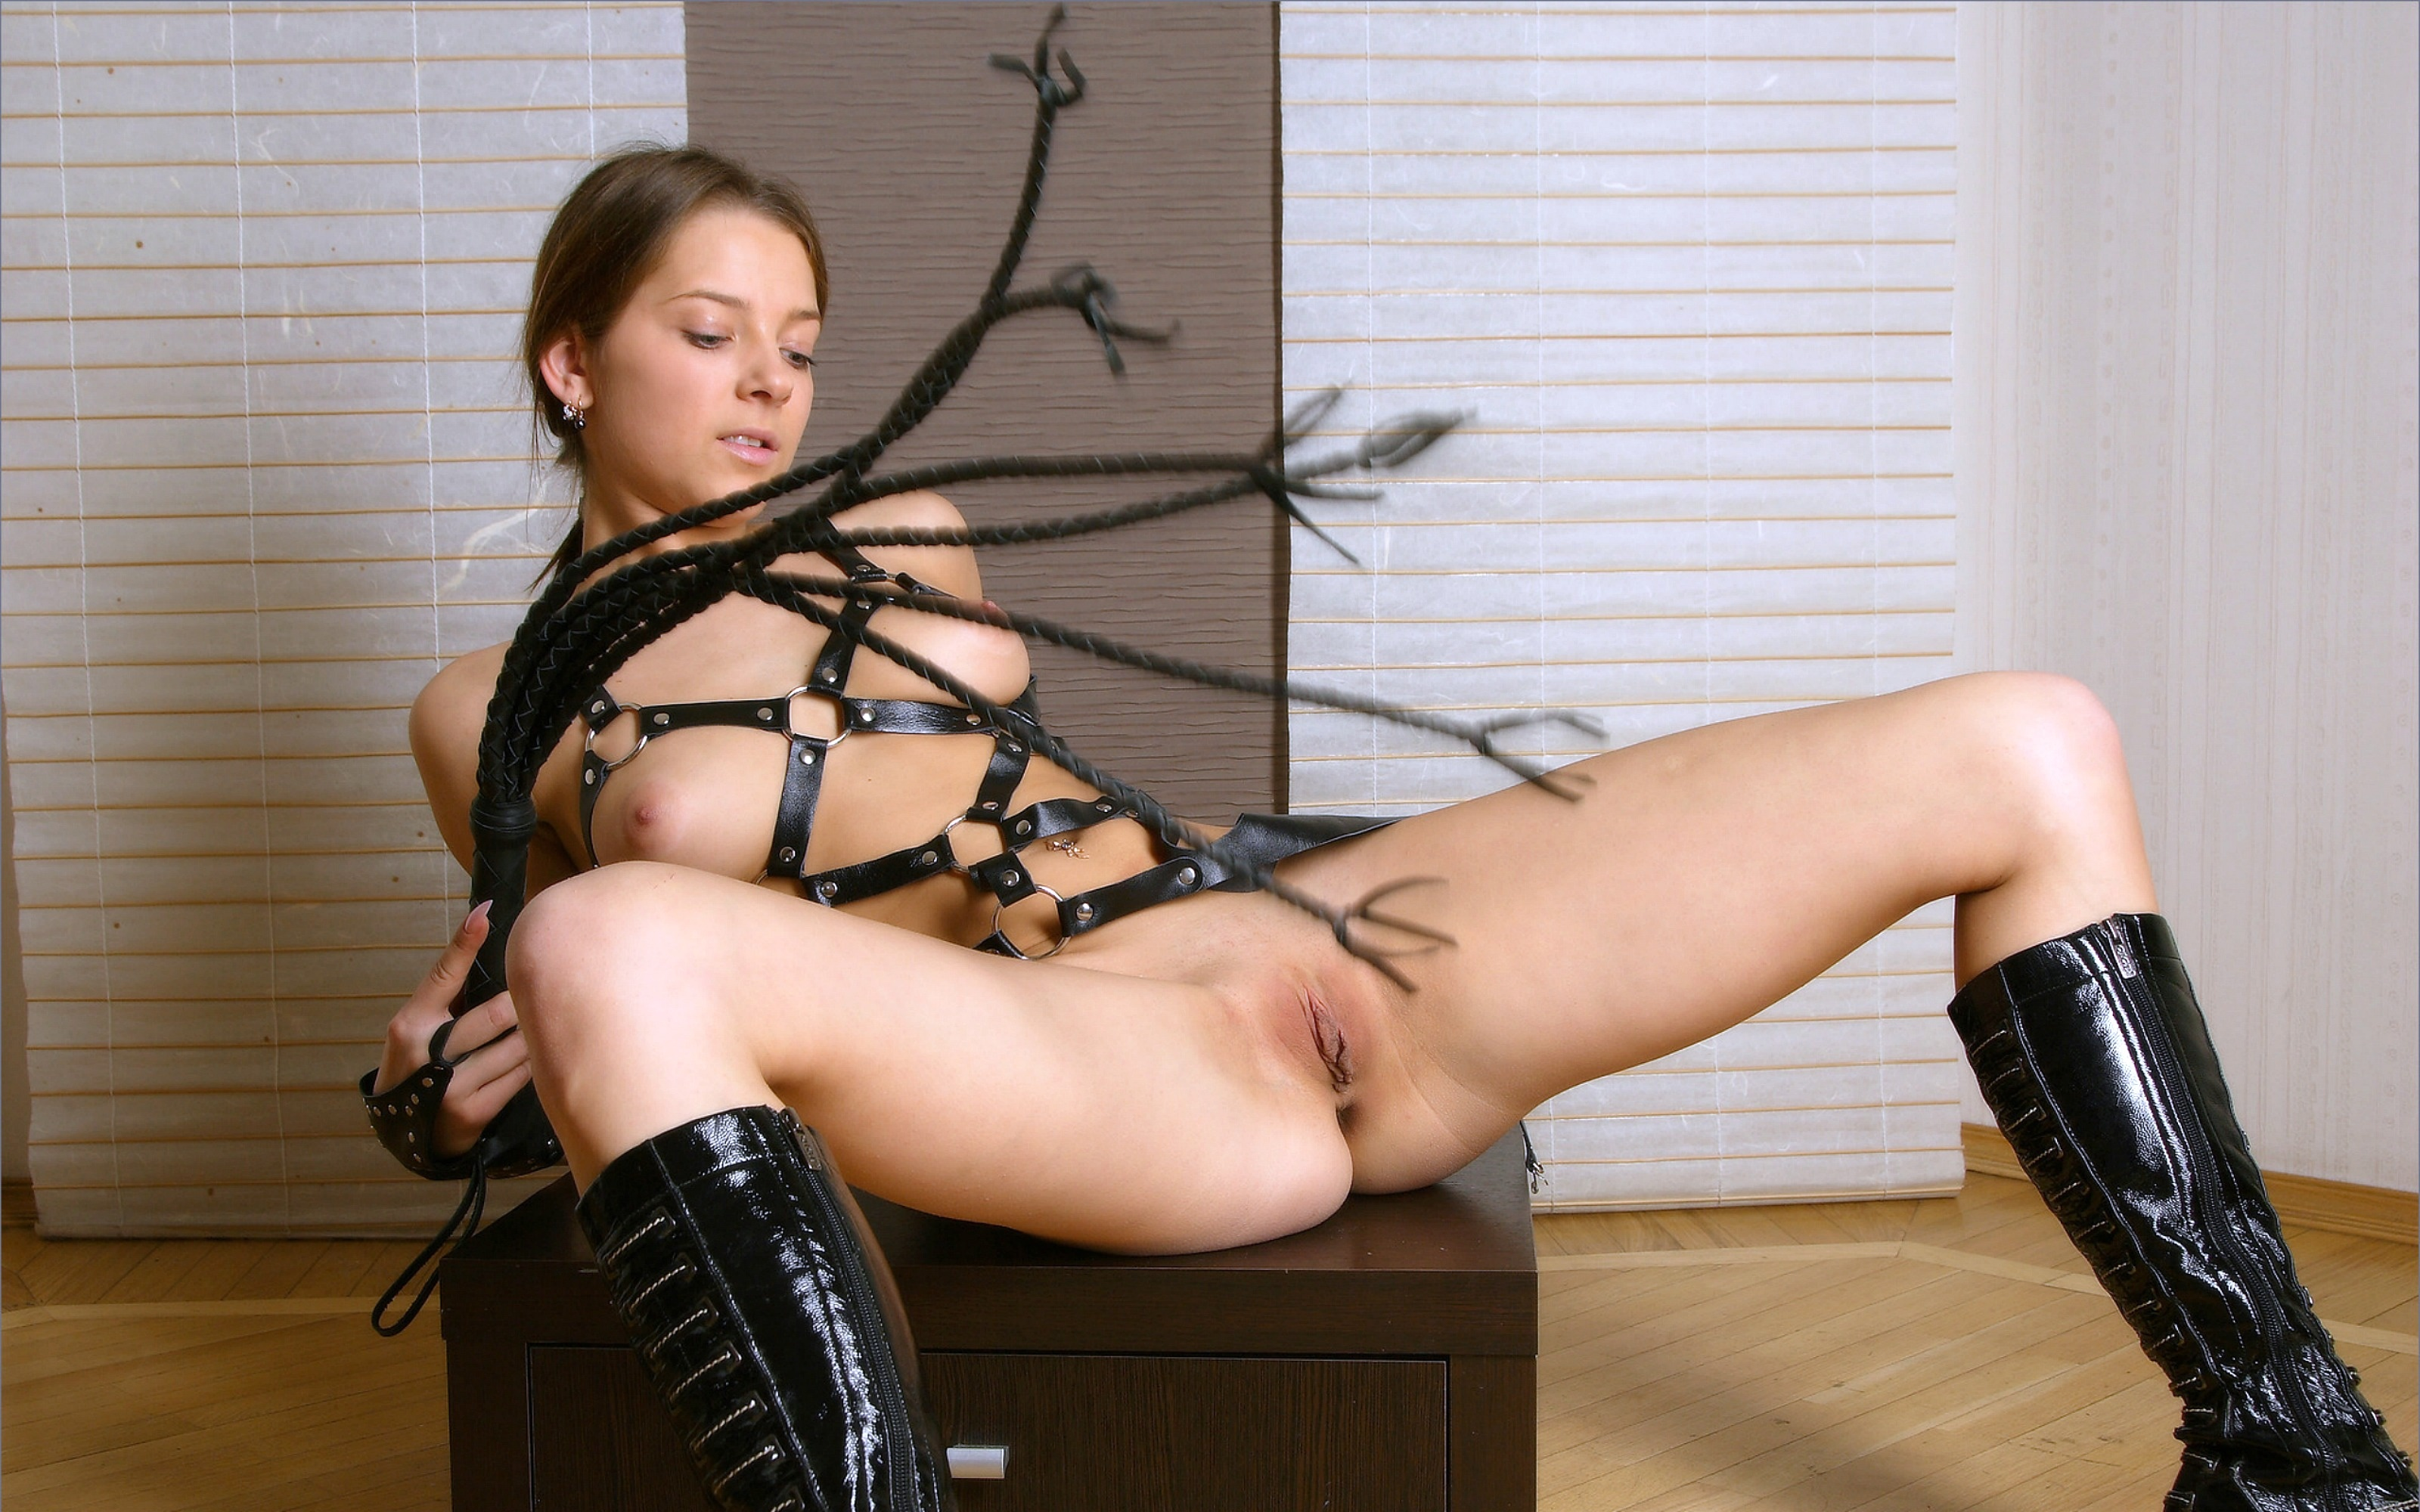 Hot chicks in leather bondage useful topic